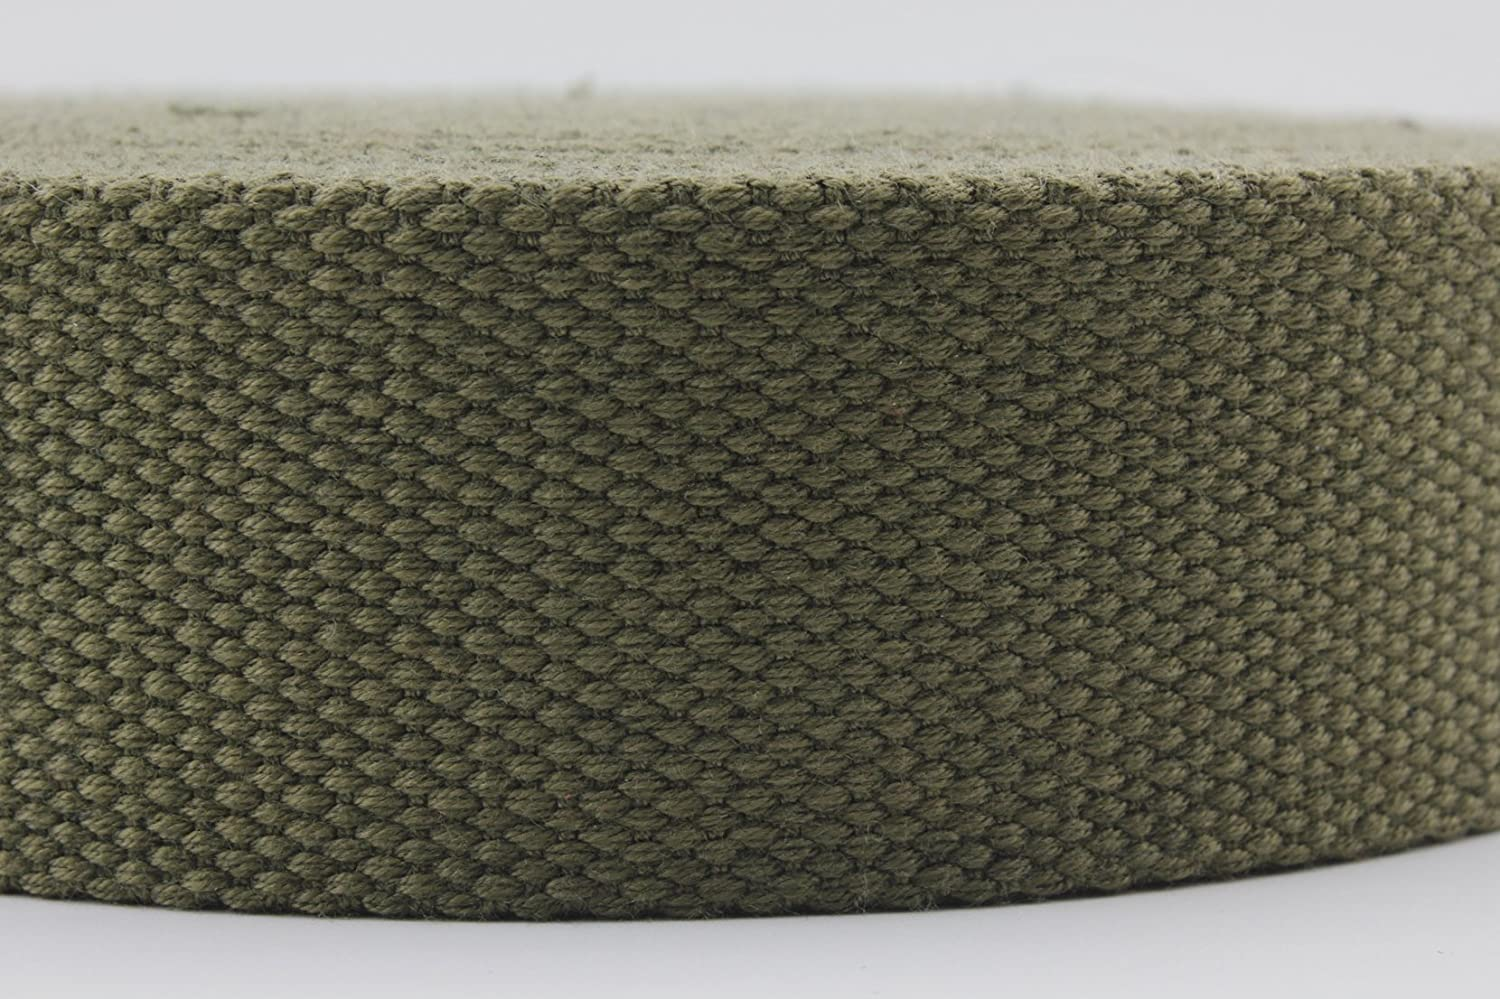 38mm Light Olive Green Heavy Weight Polyester Cotton Webbing Strap 5 Yards ZB12 1.5 inch